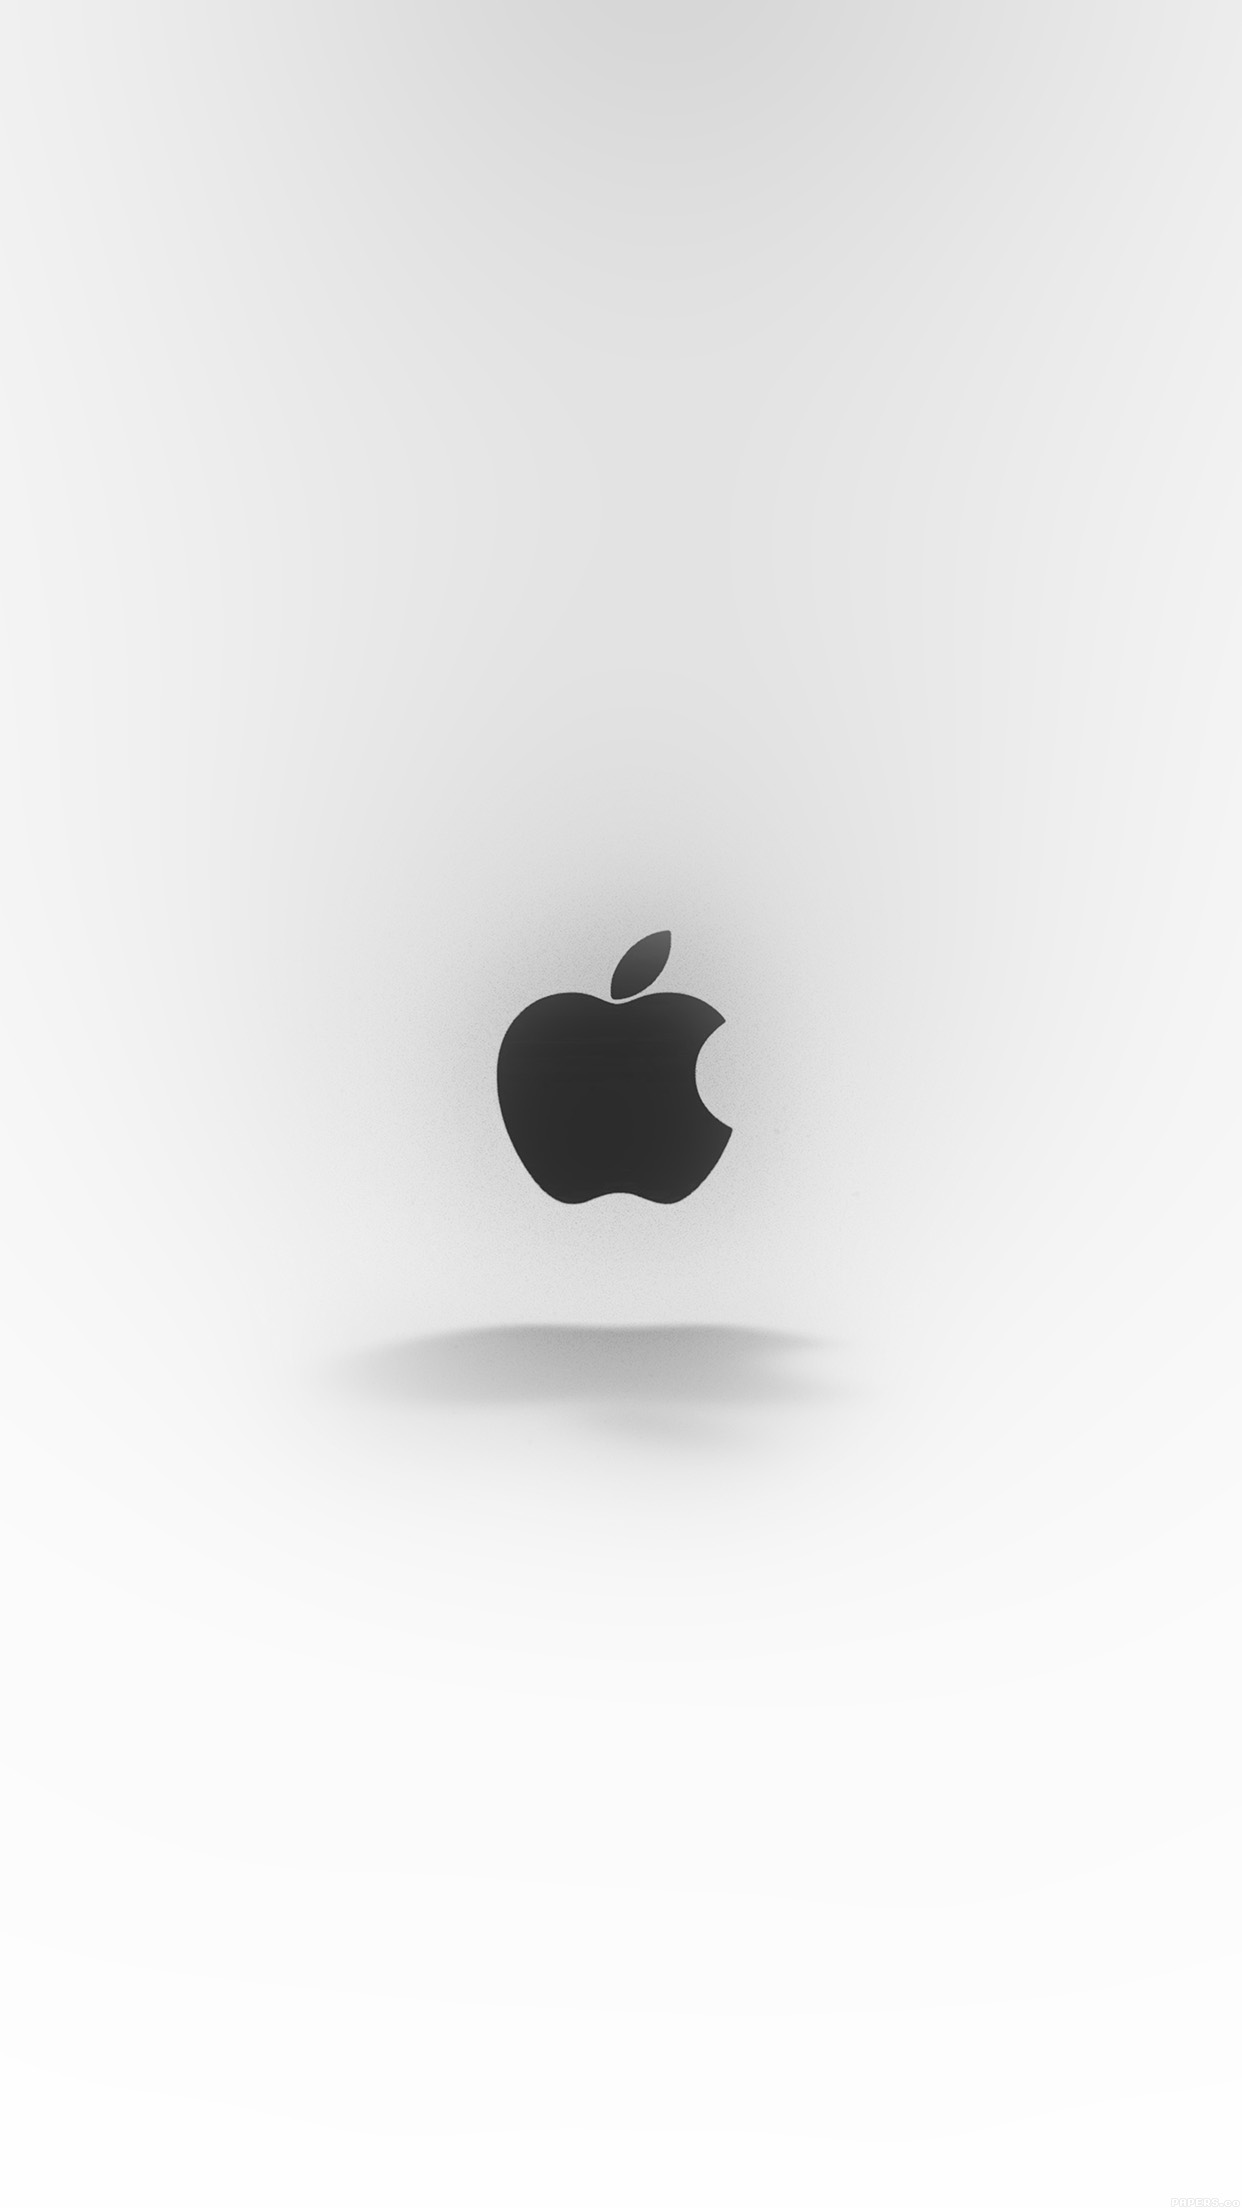 Apple logo Apple logo 1 3Wallpapers iPhone Parallax Apple logo 1